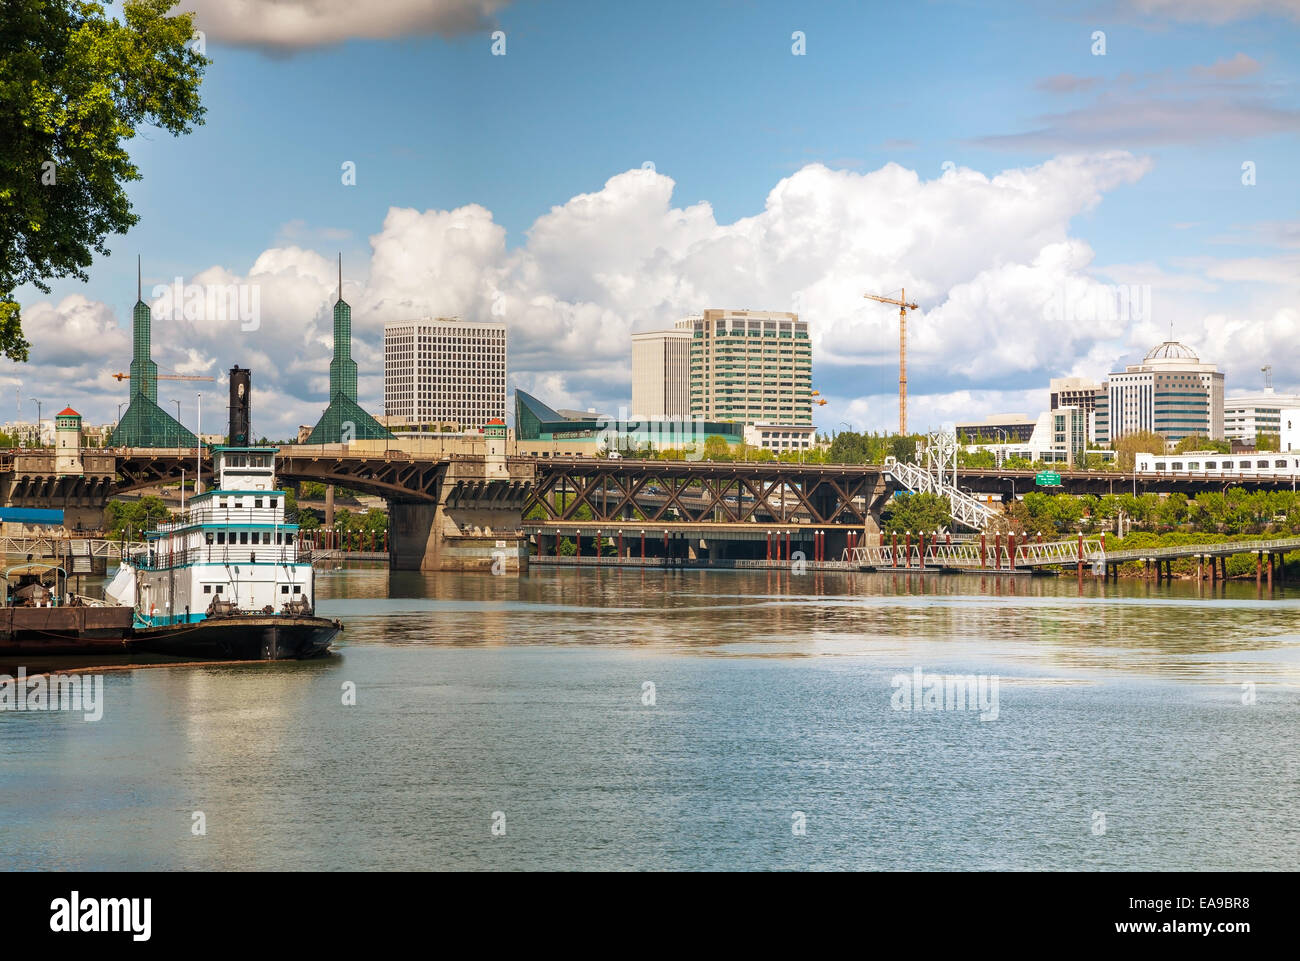 Cityscape of Portland, Oregon on a cloudy day - Stock Image